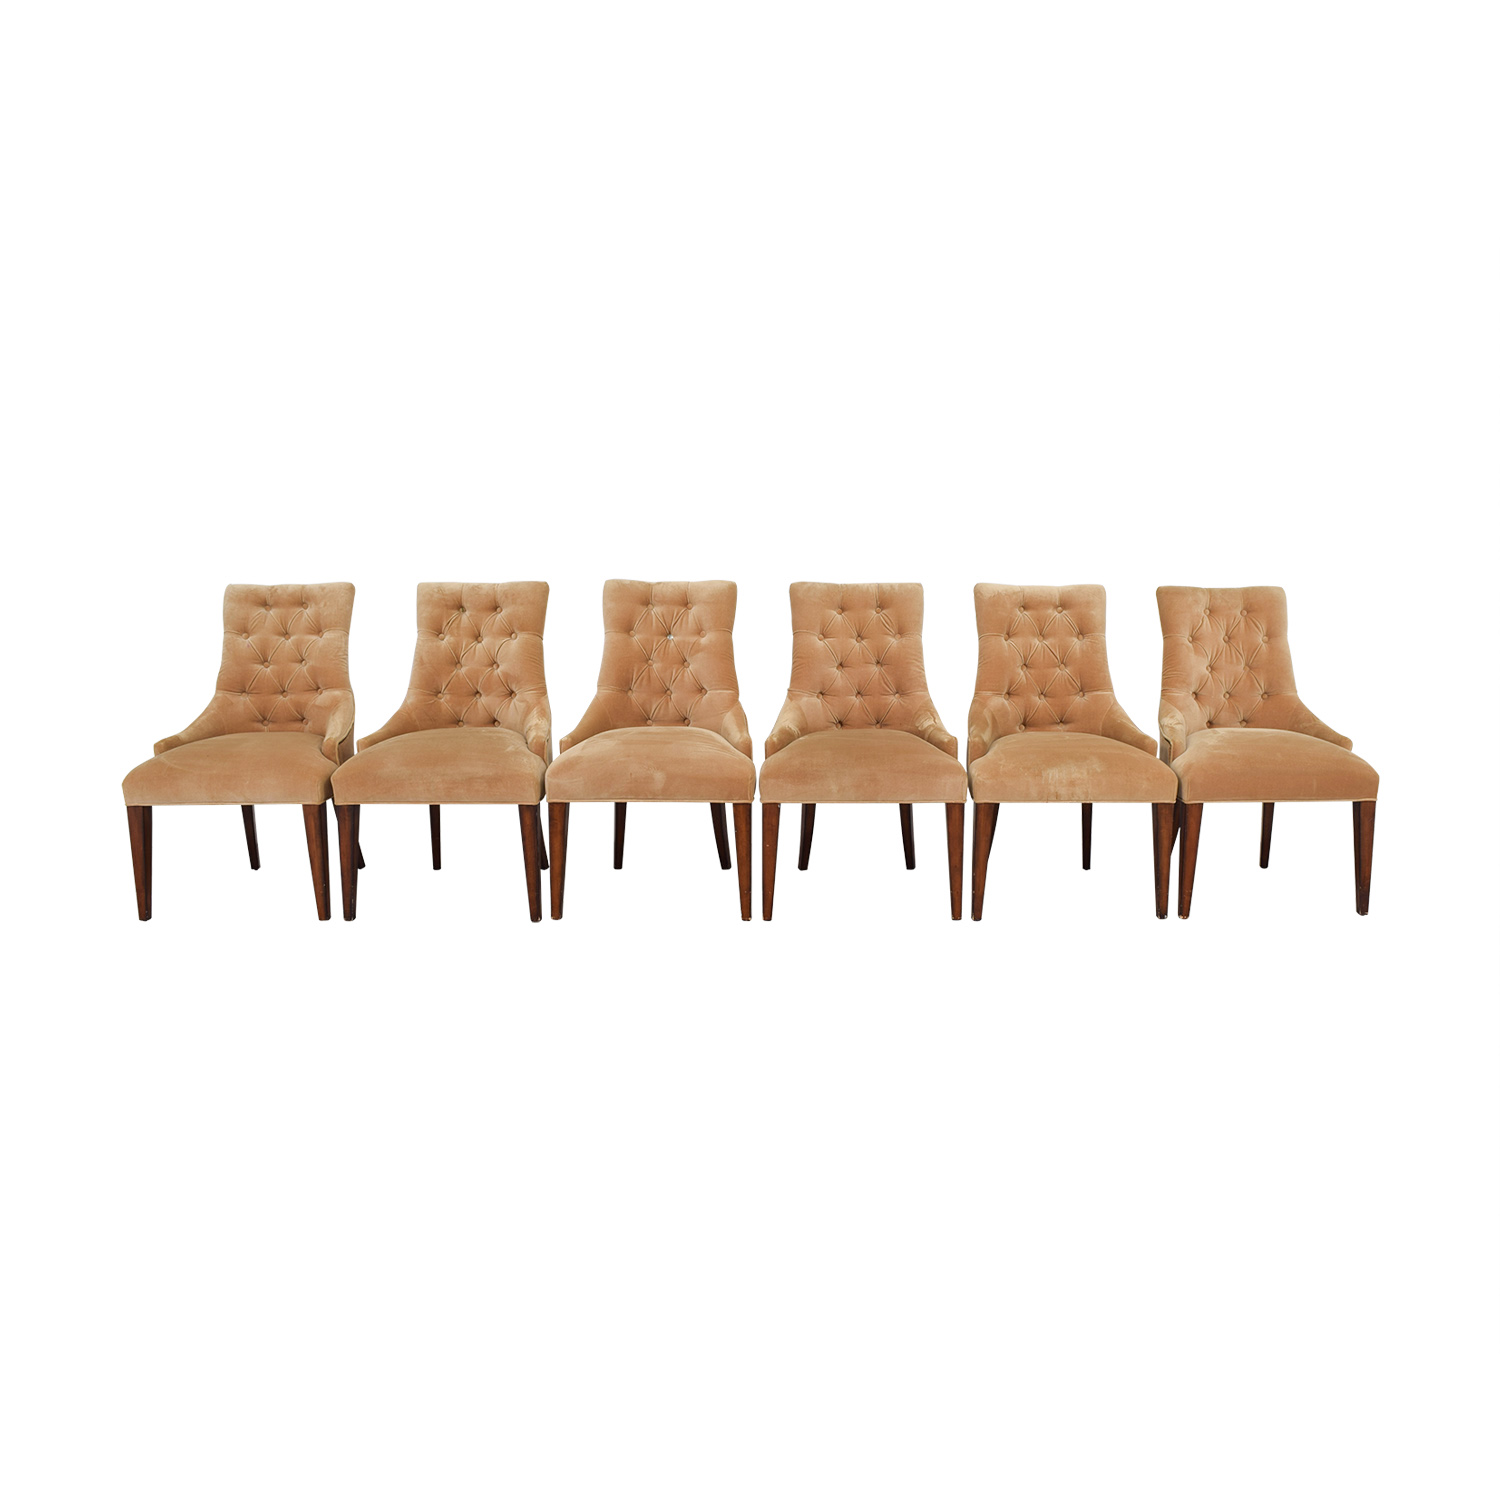 Tan Tufted Velvet Chairs on sale